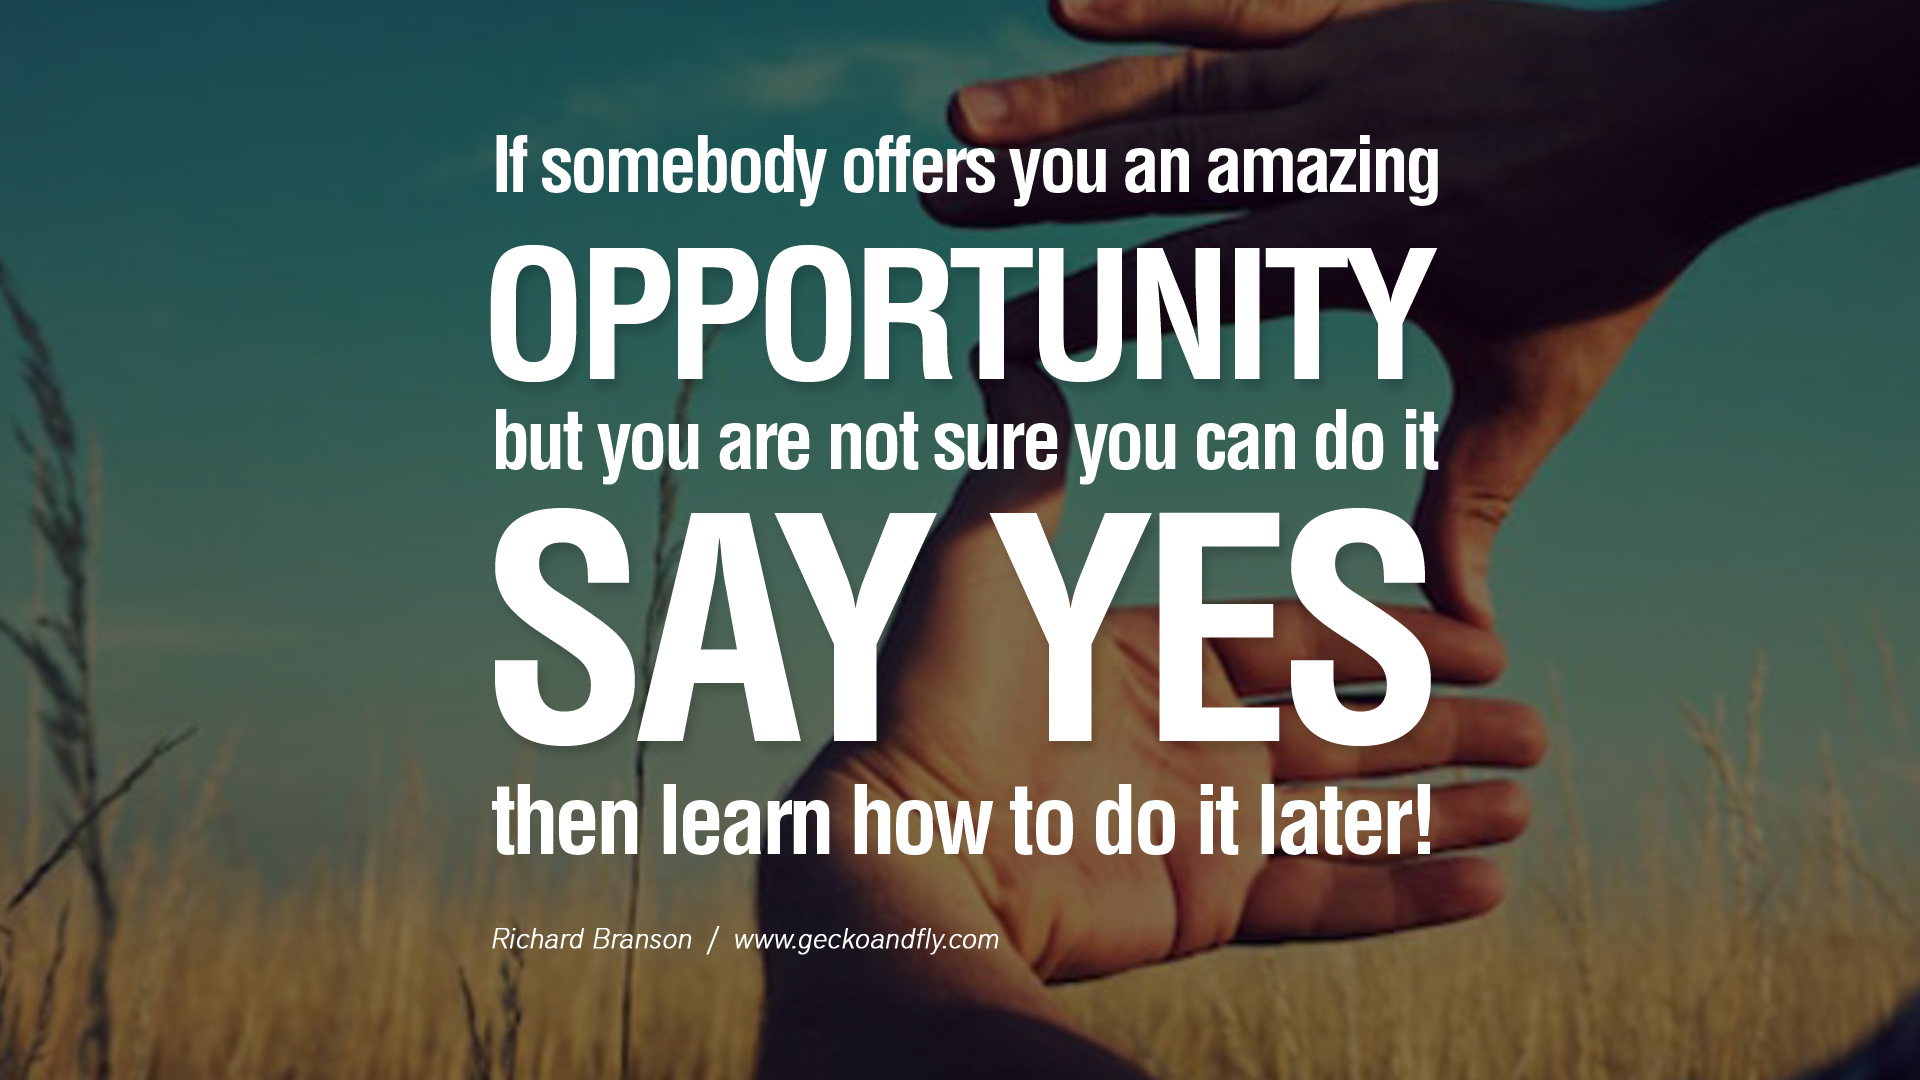 if-somebody-offers-you-an-amazing-opportunity-but-you-are-not-sure-you-can-do-it-say-yes-then-learn-how-to-do-it-later-opportunity-quote-1